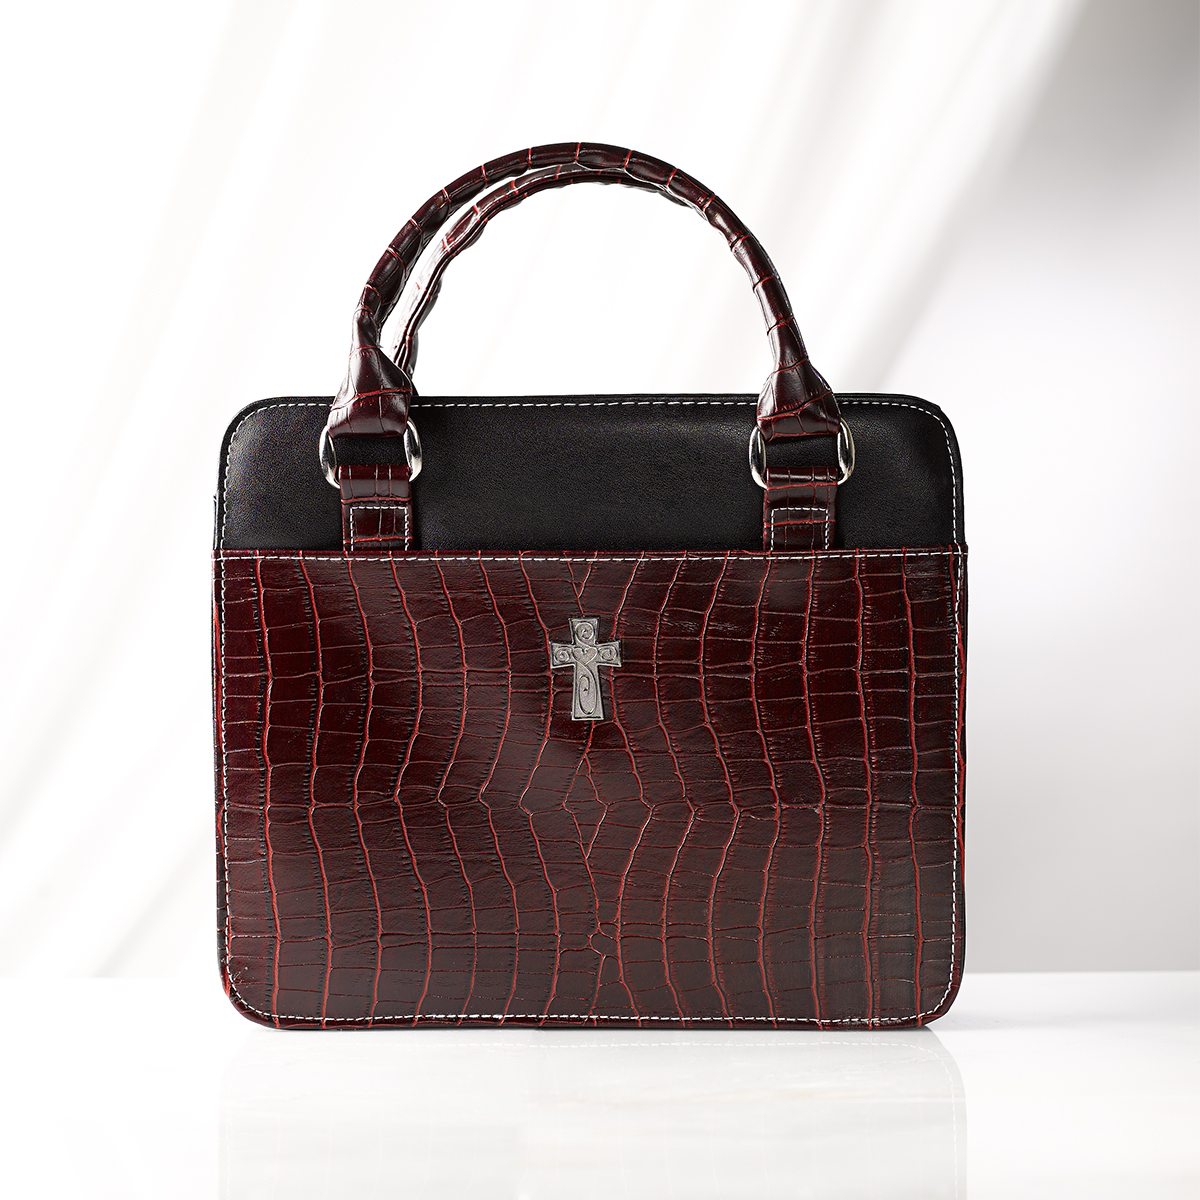 Purse-Style-with-Crocodile-Embossing-in-Burgundy-Bible-Cover-Size-Medium thumbnail 5